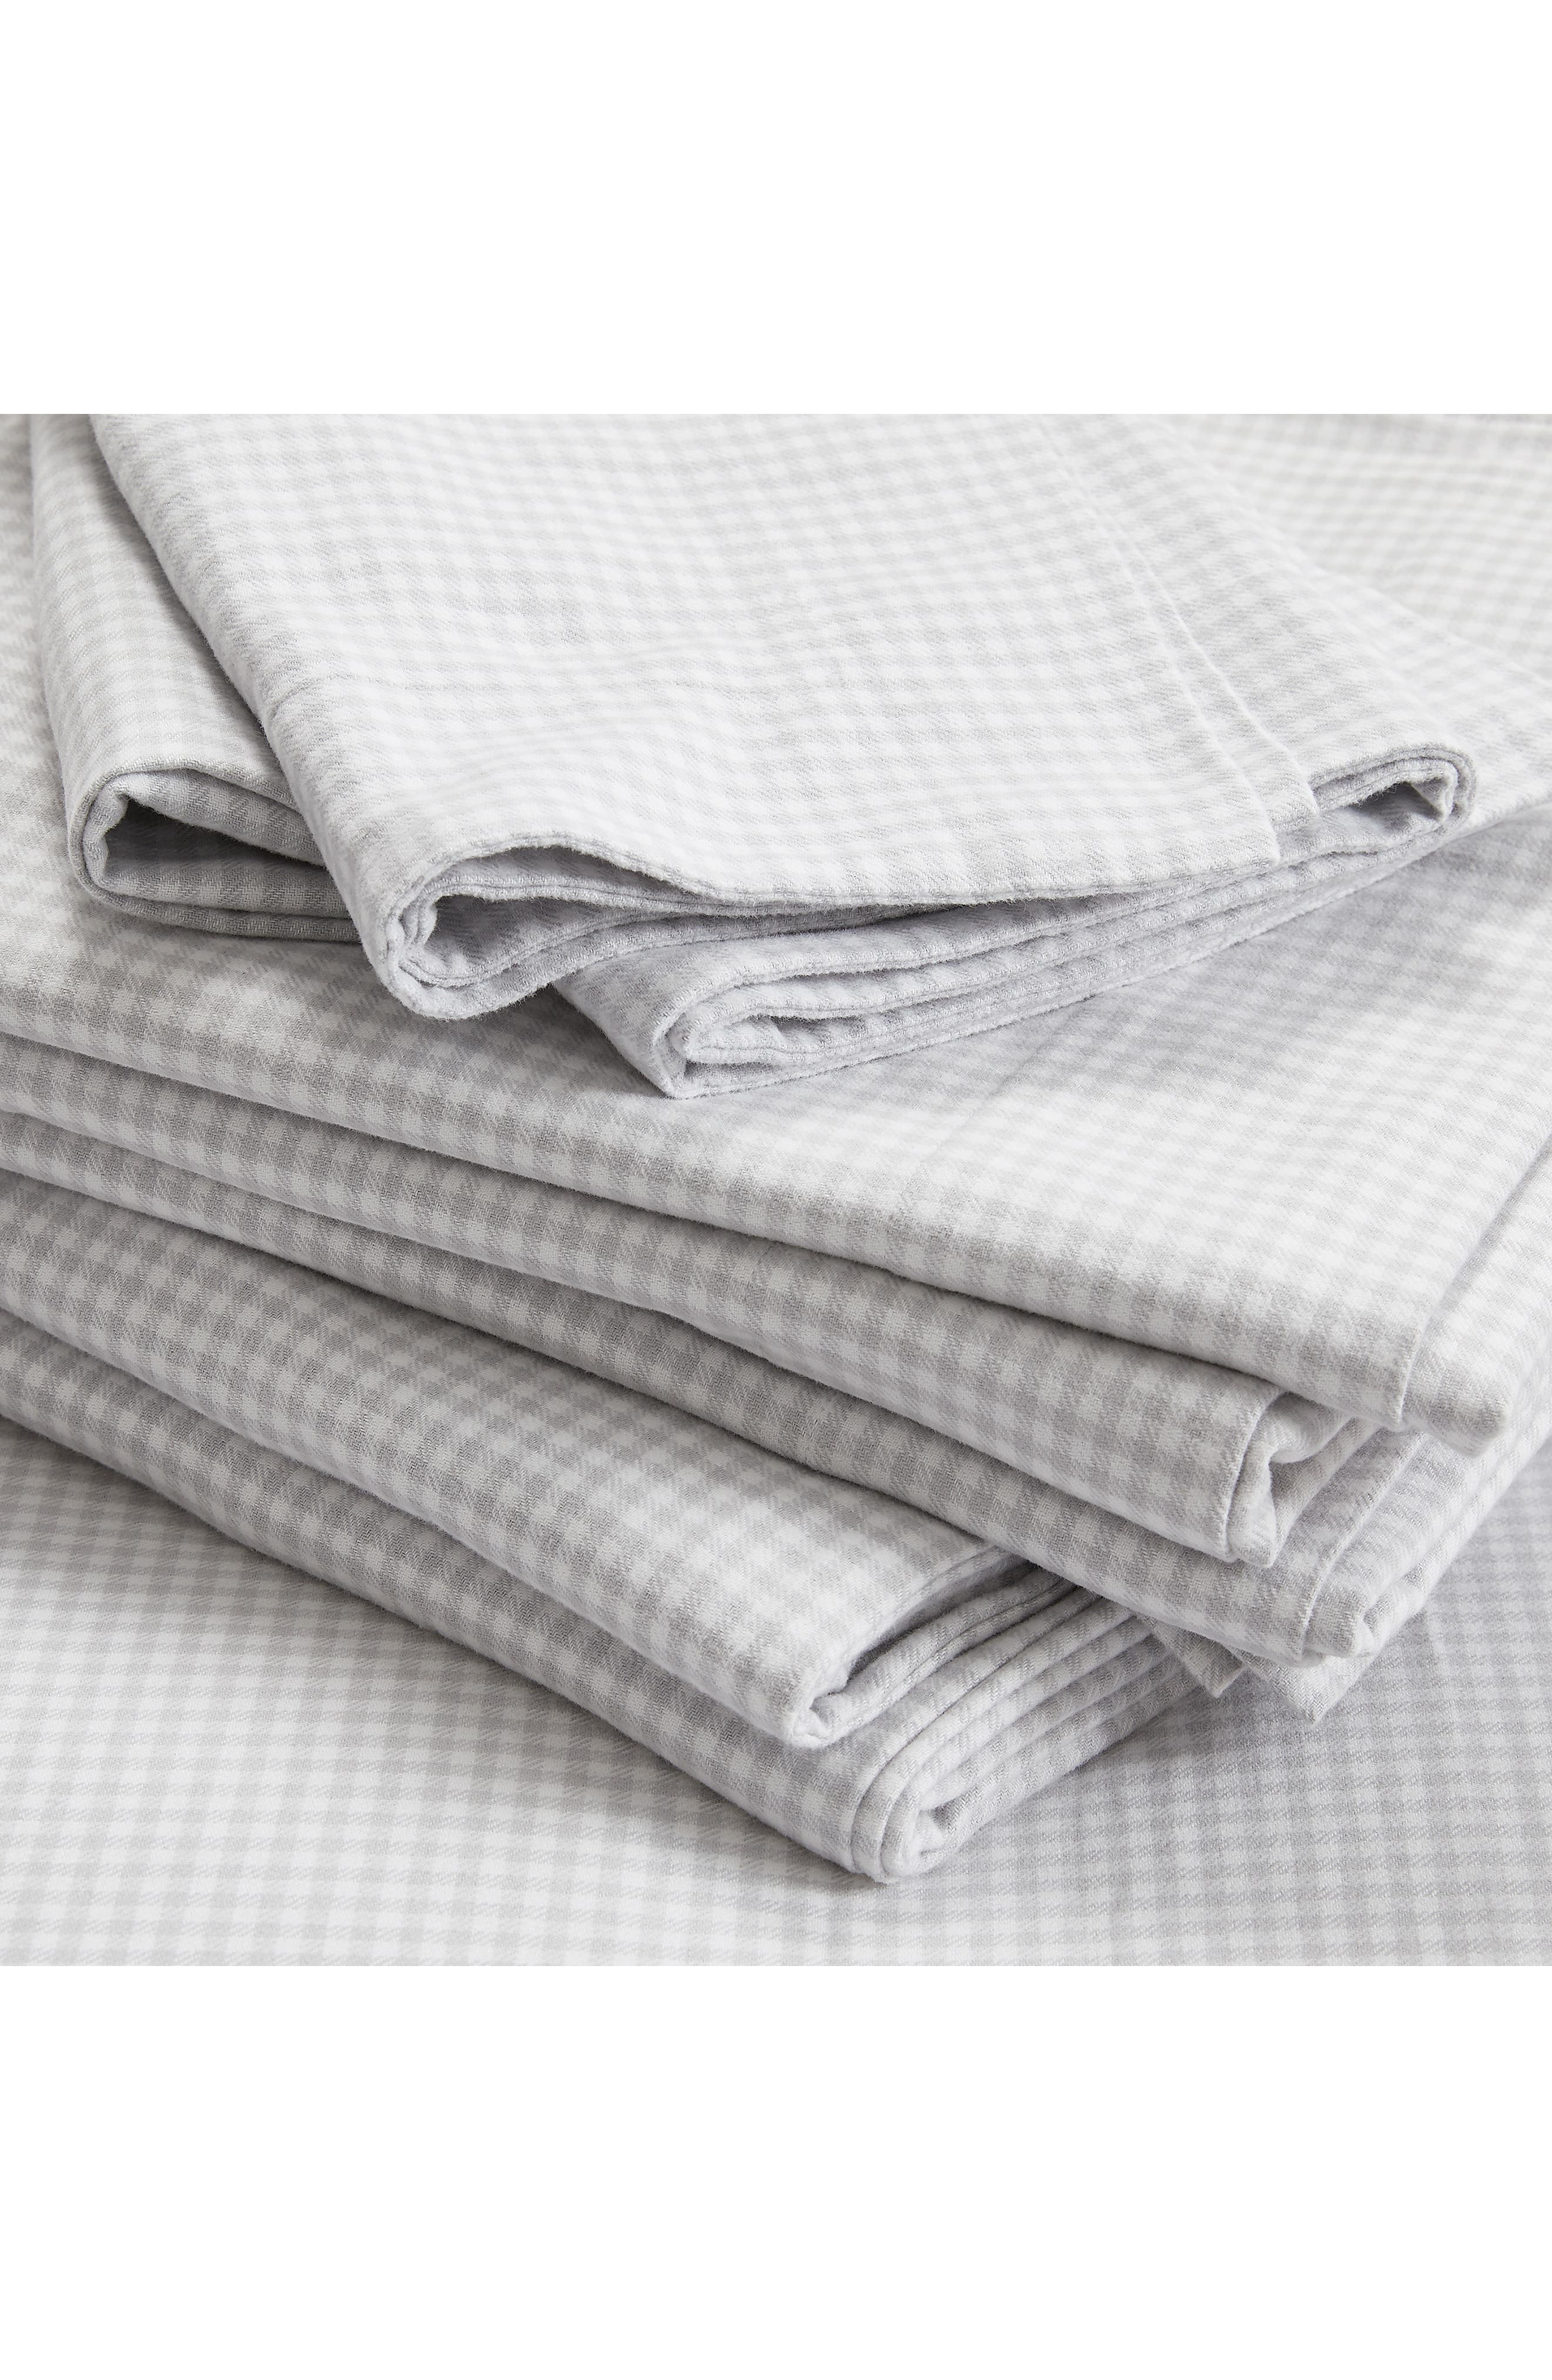 THE WHITE COMPANY Harrington Flannel Flat Sheet, Main, color, SOFT GREY